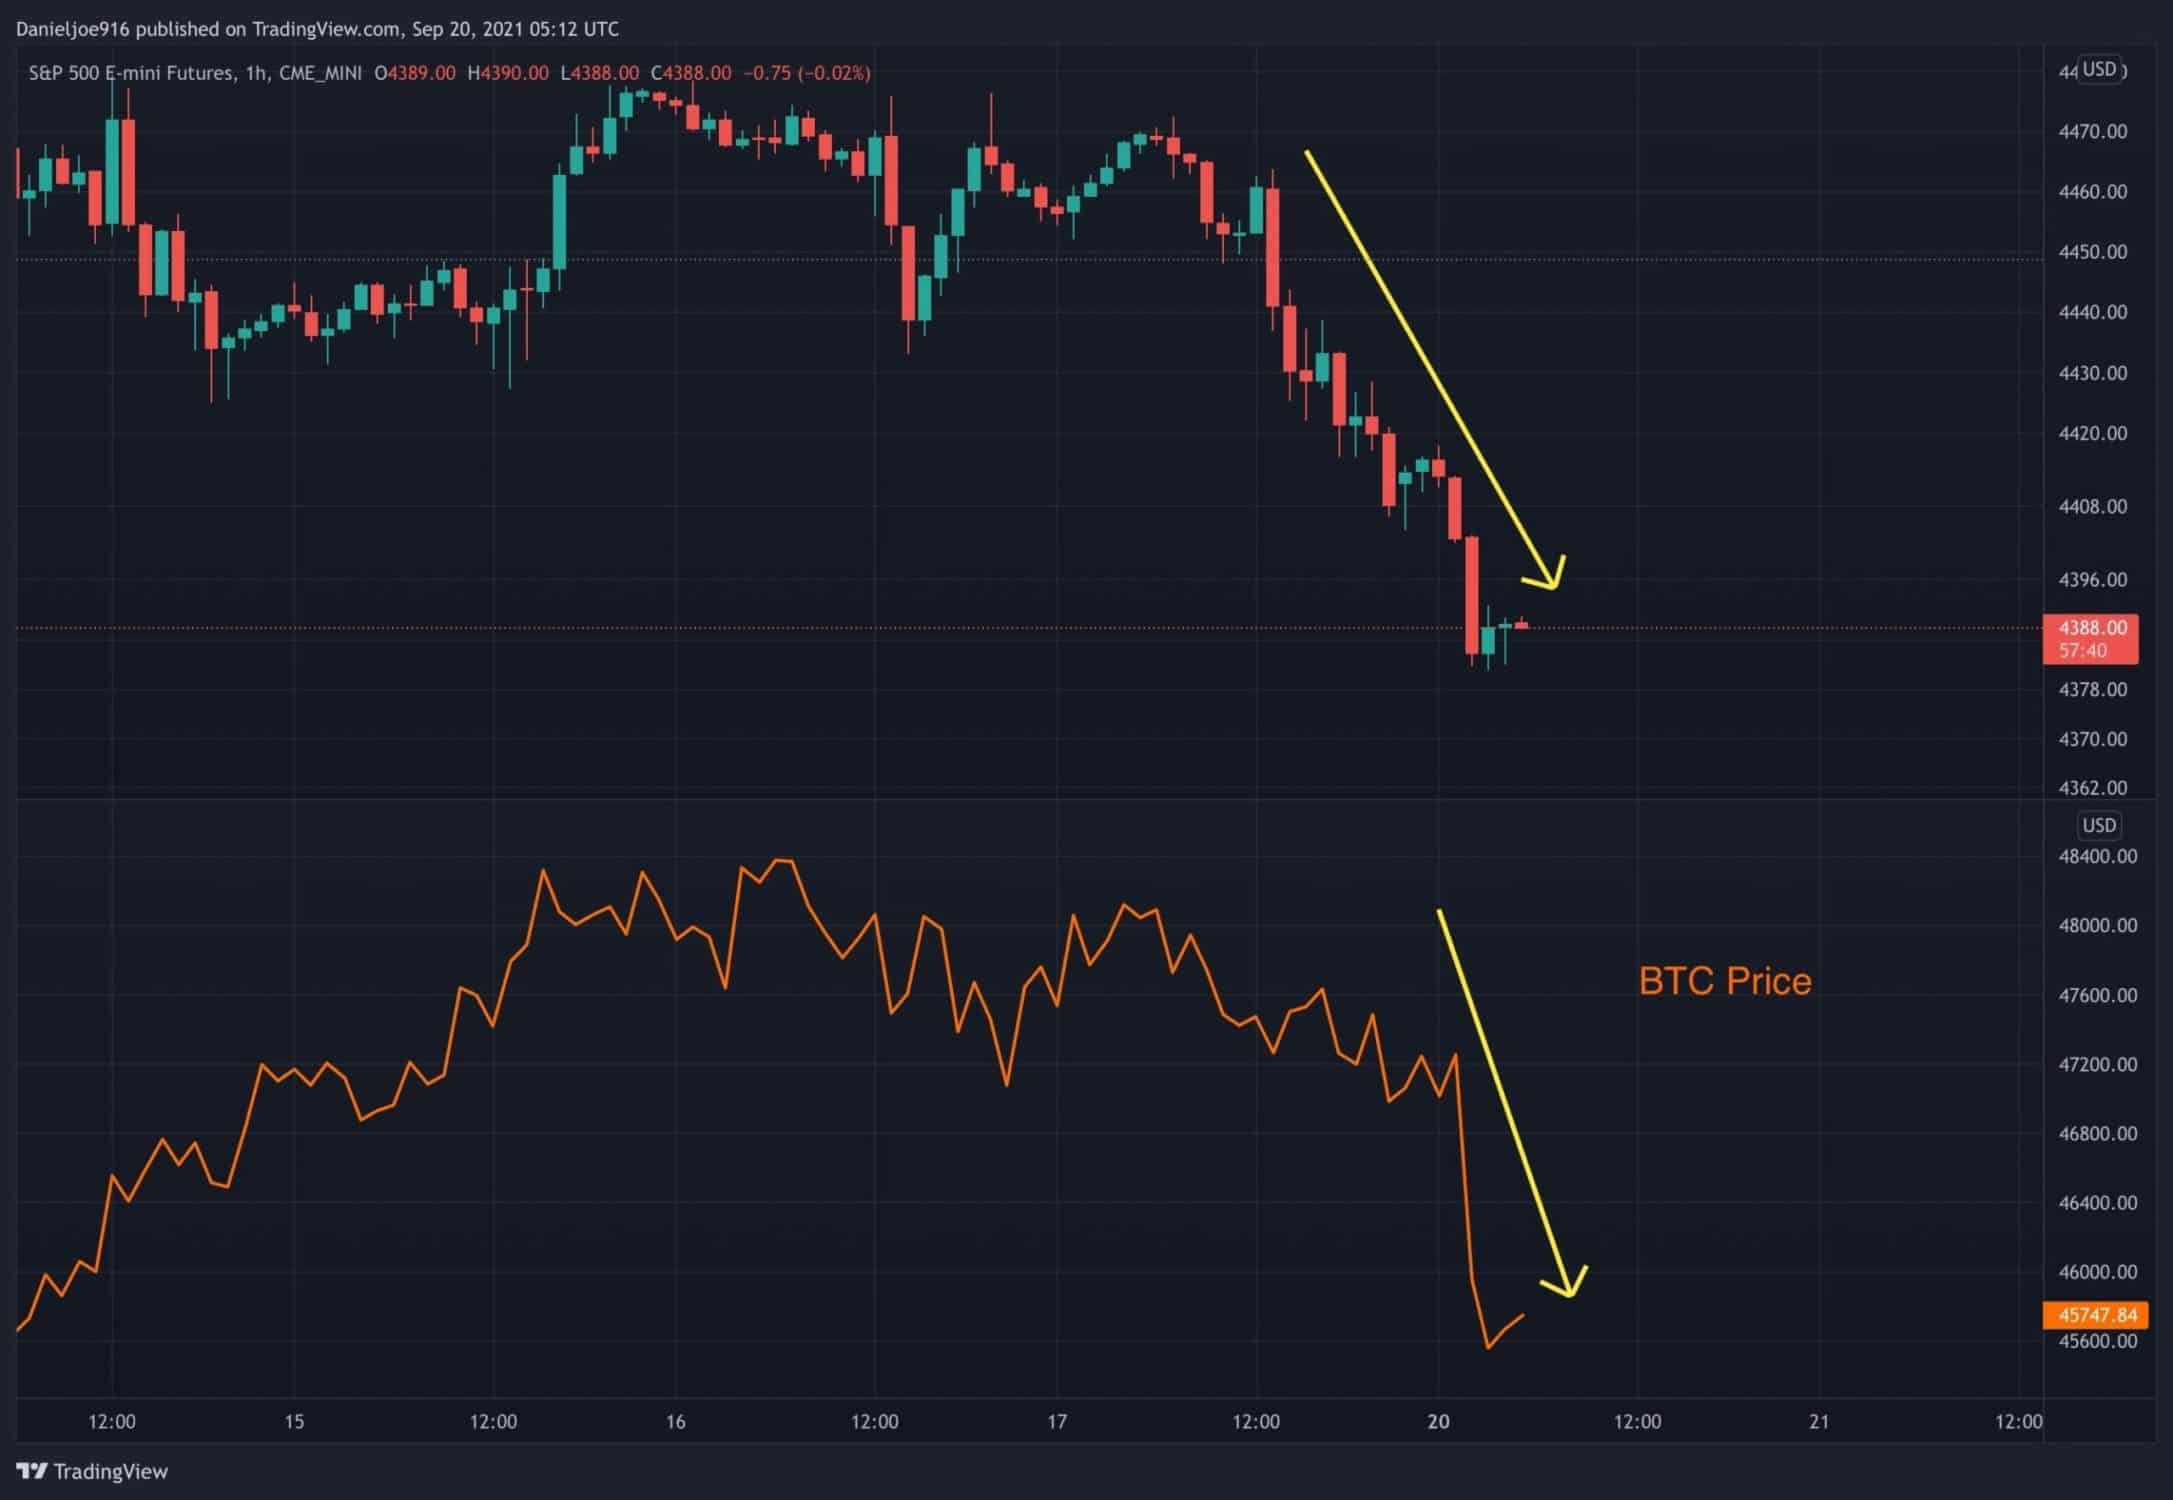 Bitcoin Plunges on Global Stocks Crash, Where is The Next Critical Support? (BTC Price Analysis)